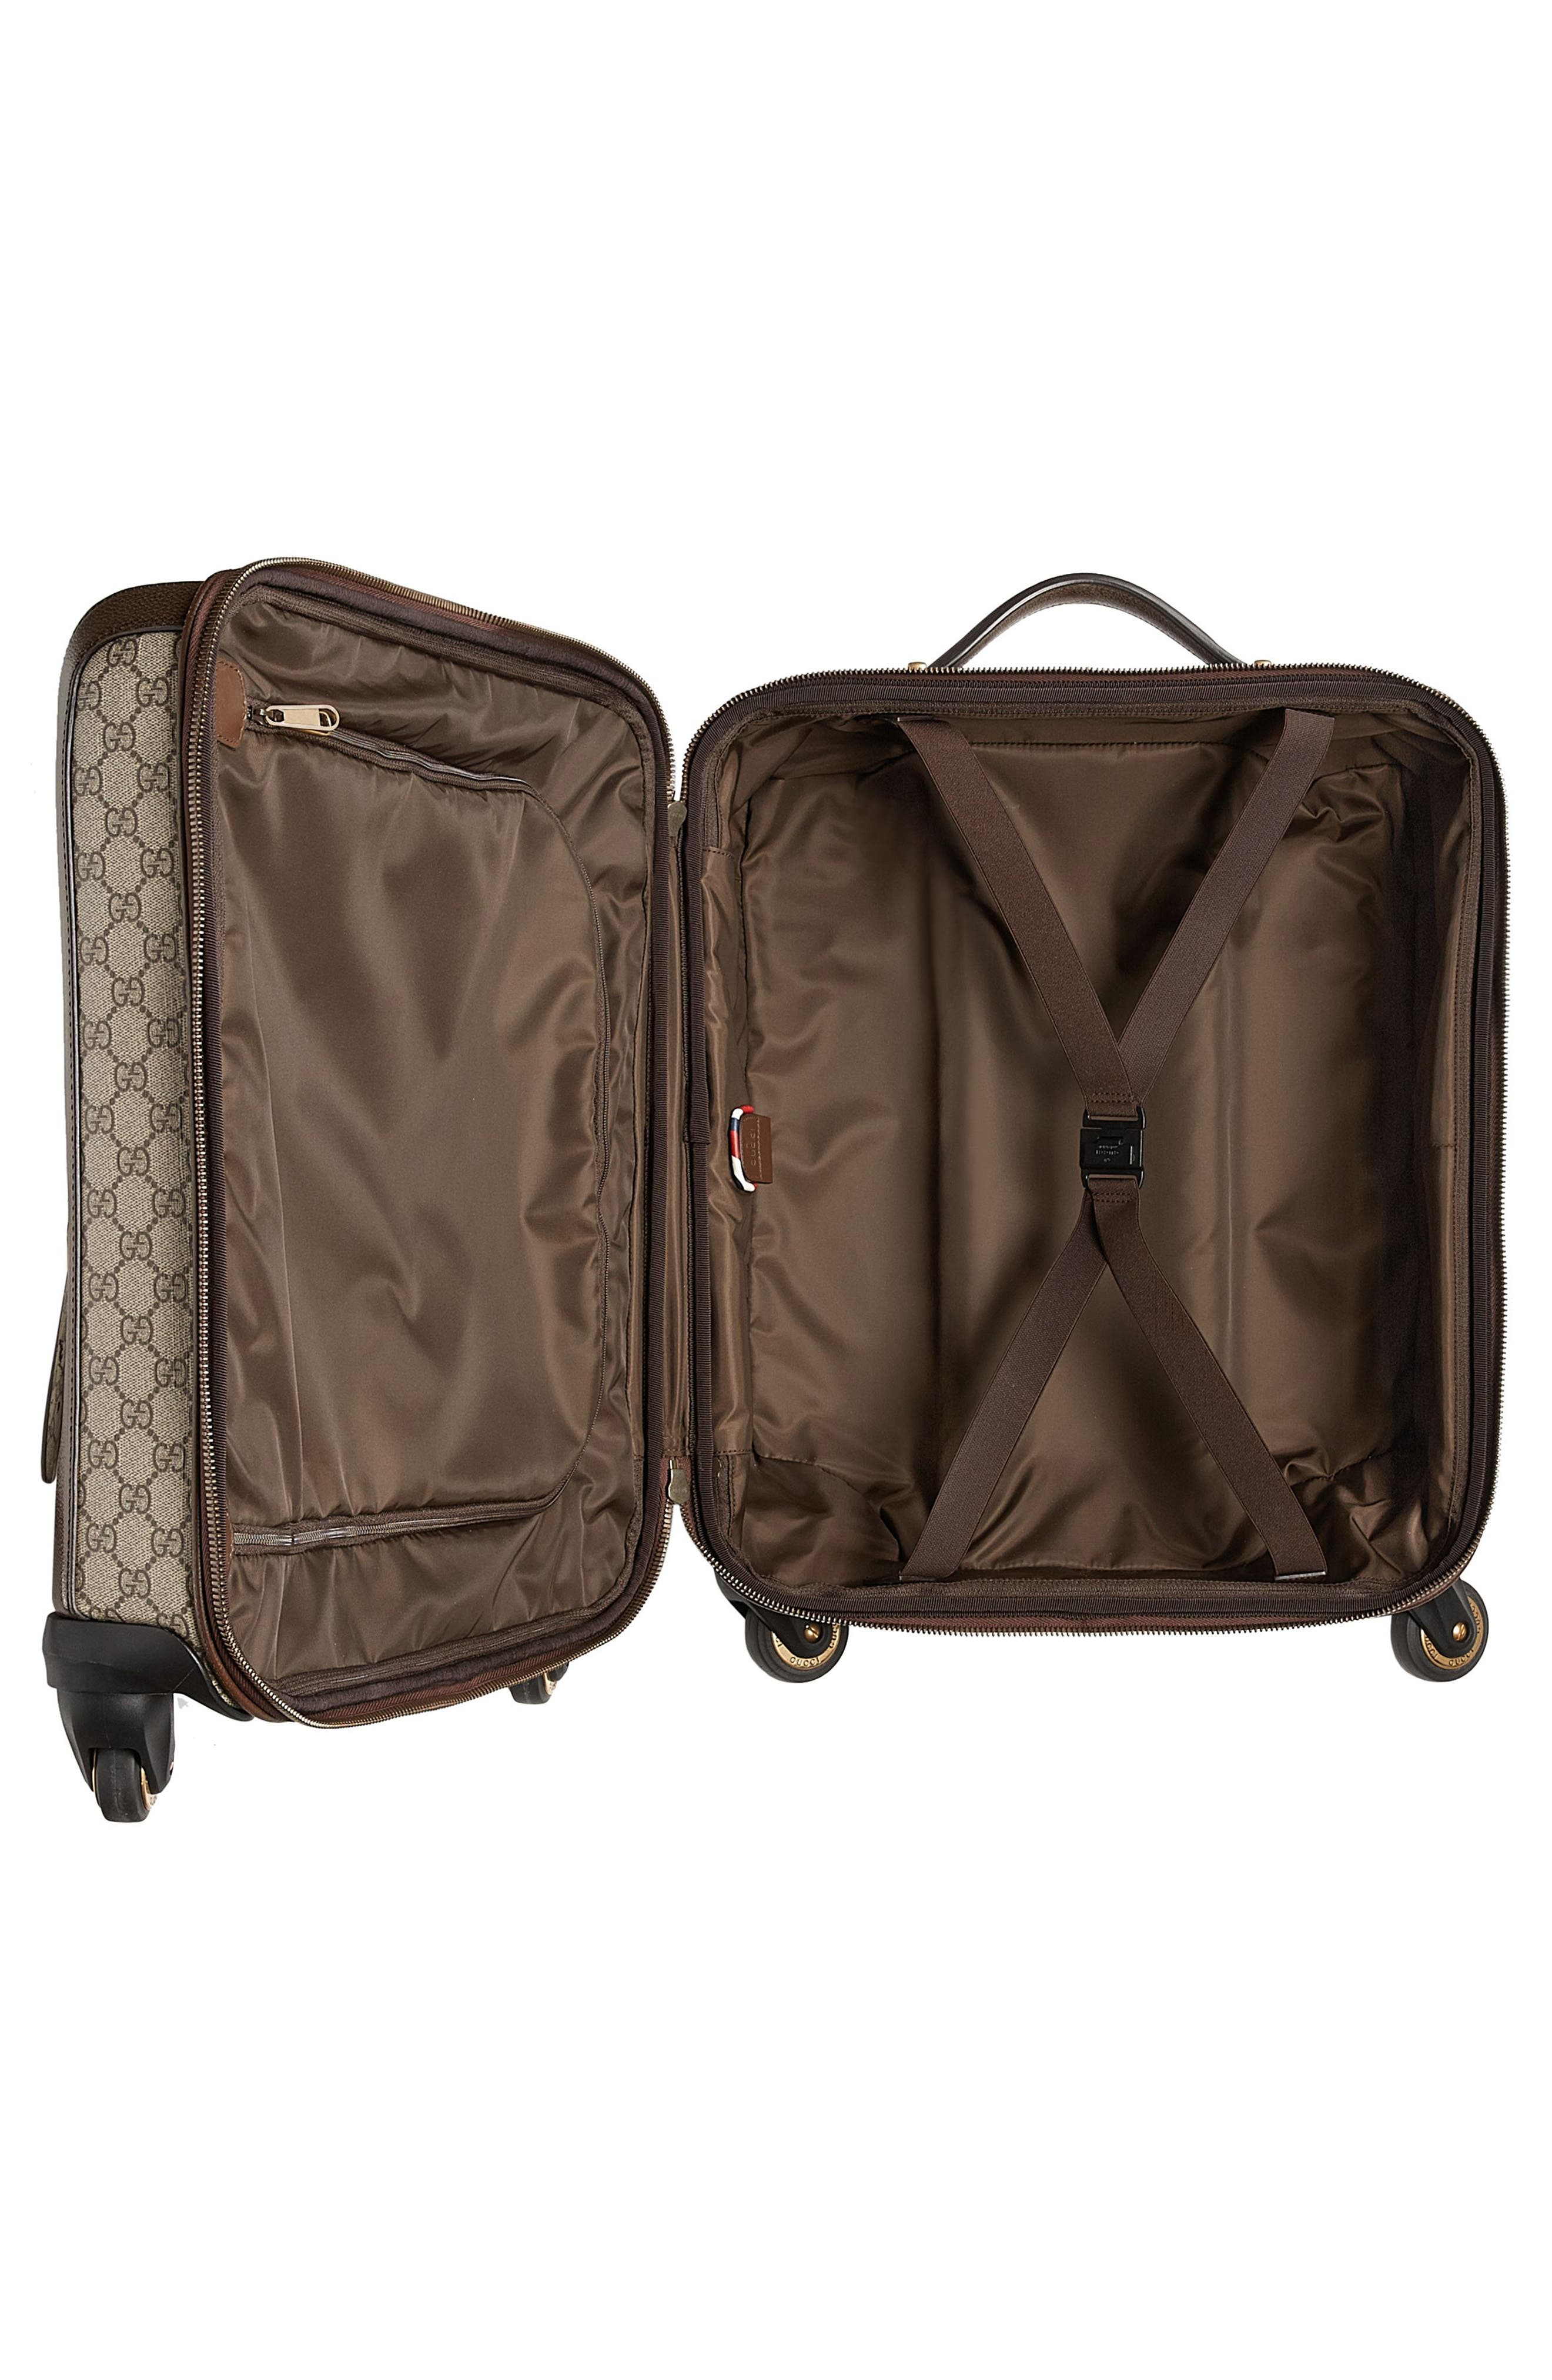 Courier GG Supreme Patches Carry-On,                             Alternate thumbnail 4, color,                             Beige